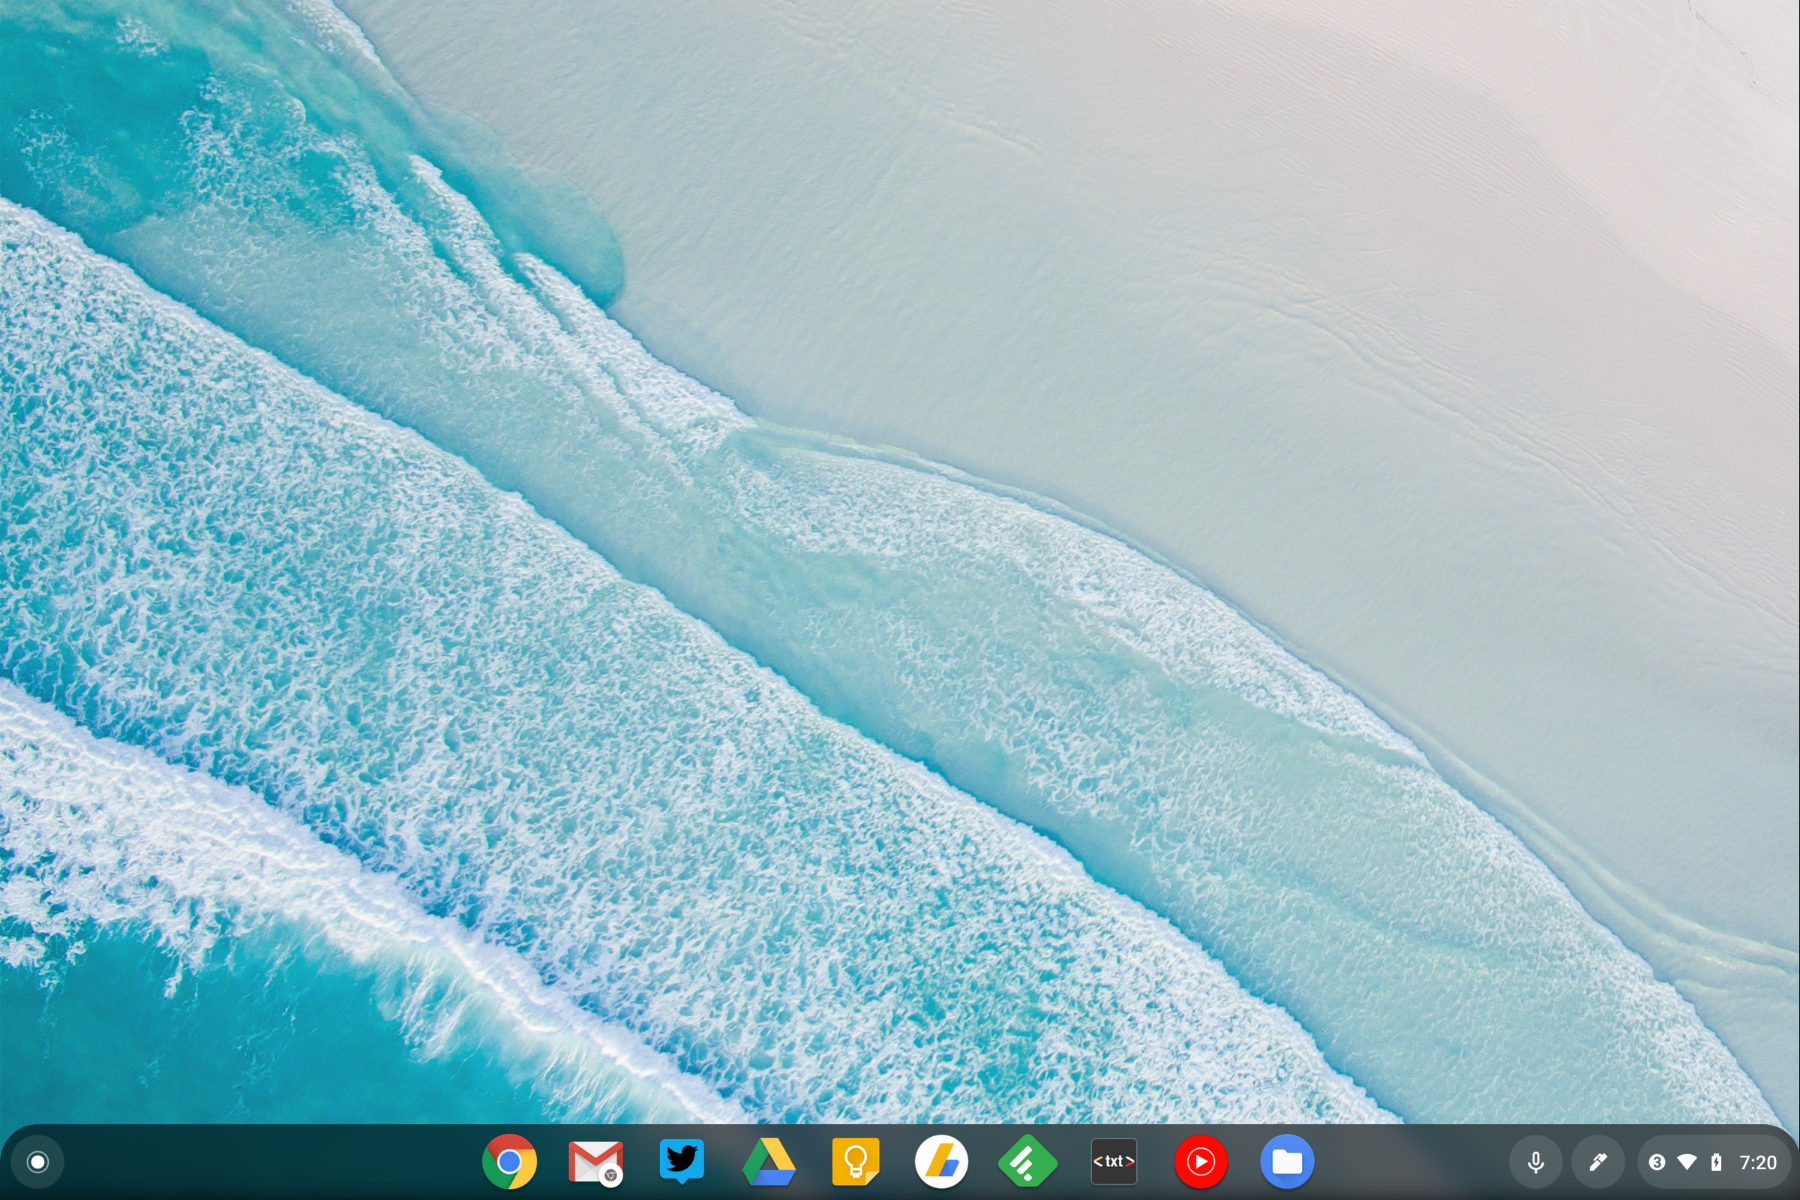 Chrome OS 70 rolling out w/ completely redesigned tablet UI - 9to5Google